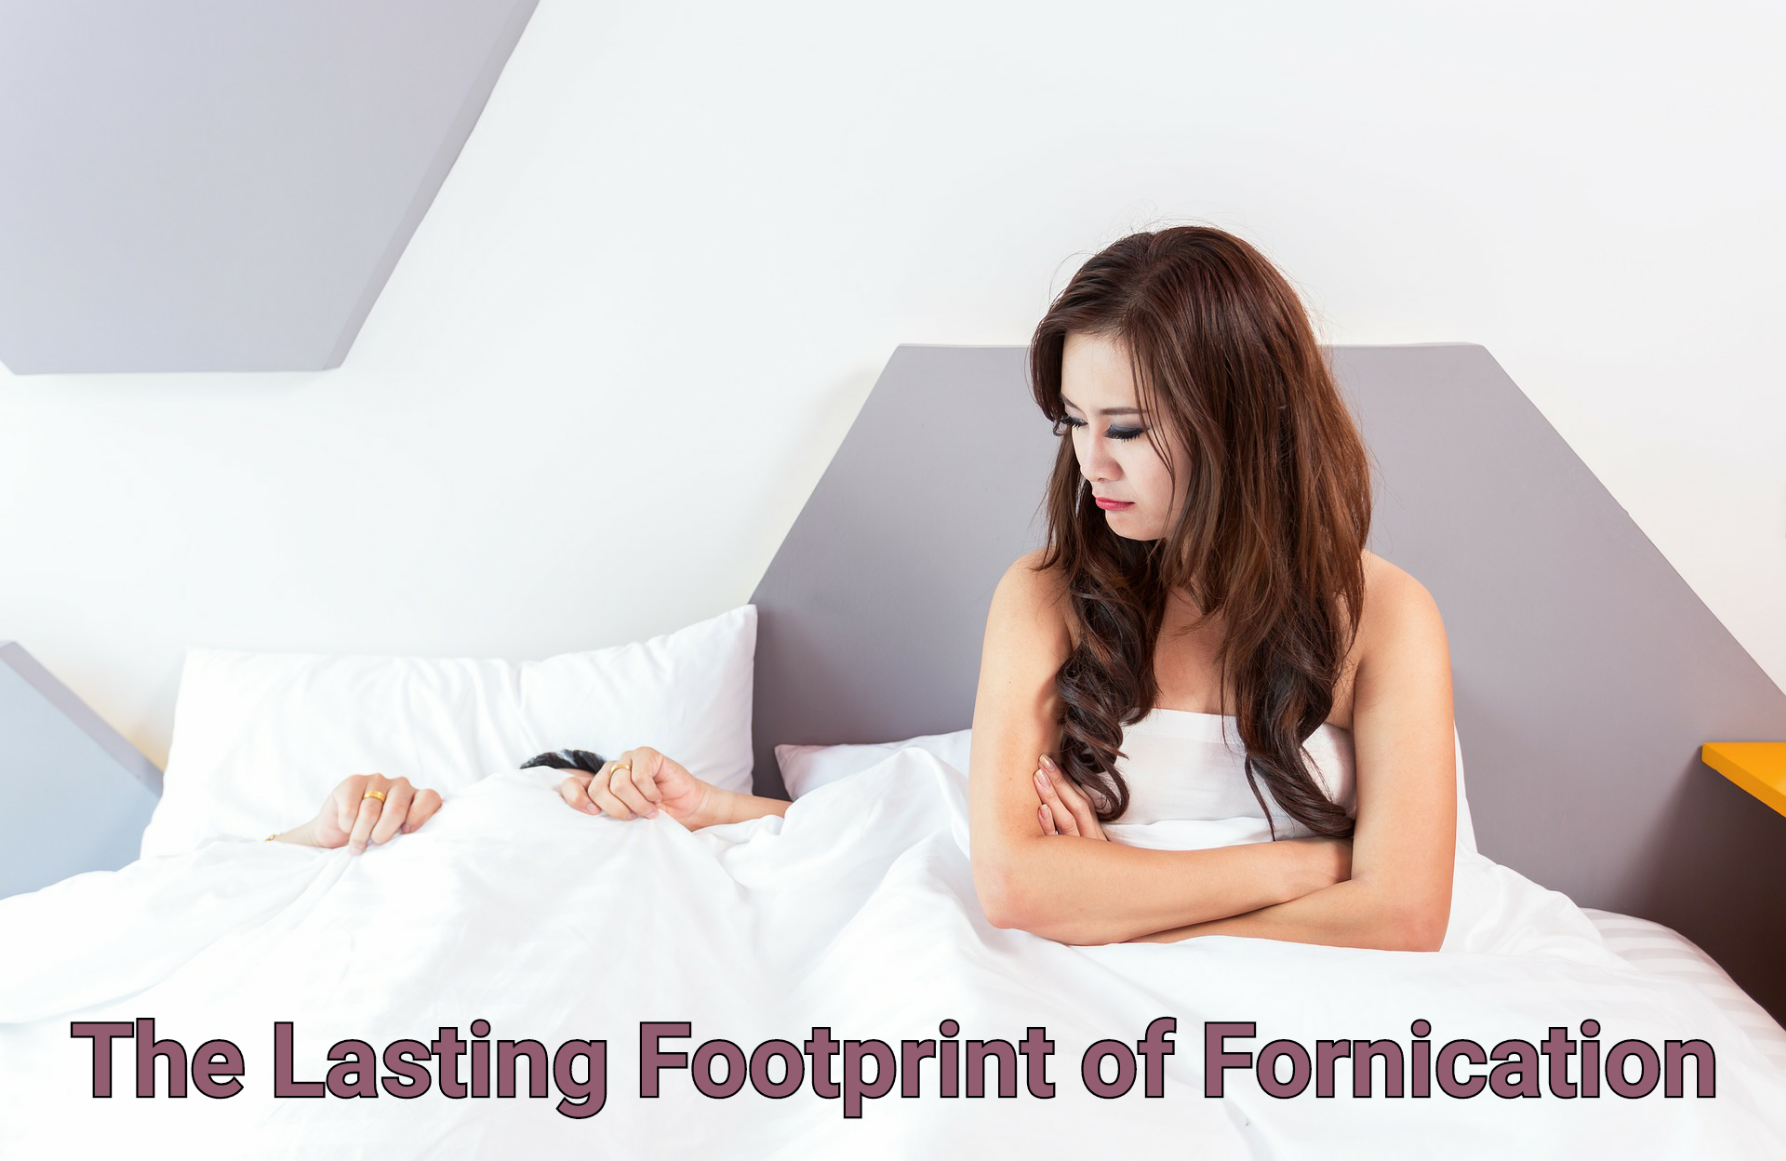 Footprints of Fornication